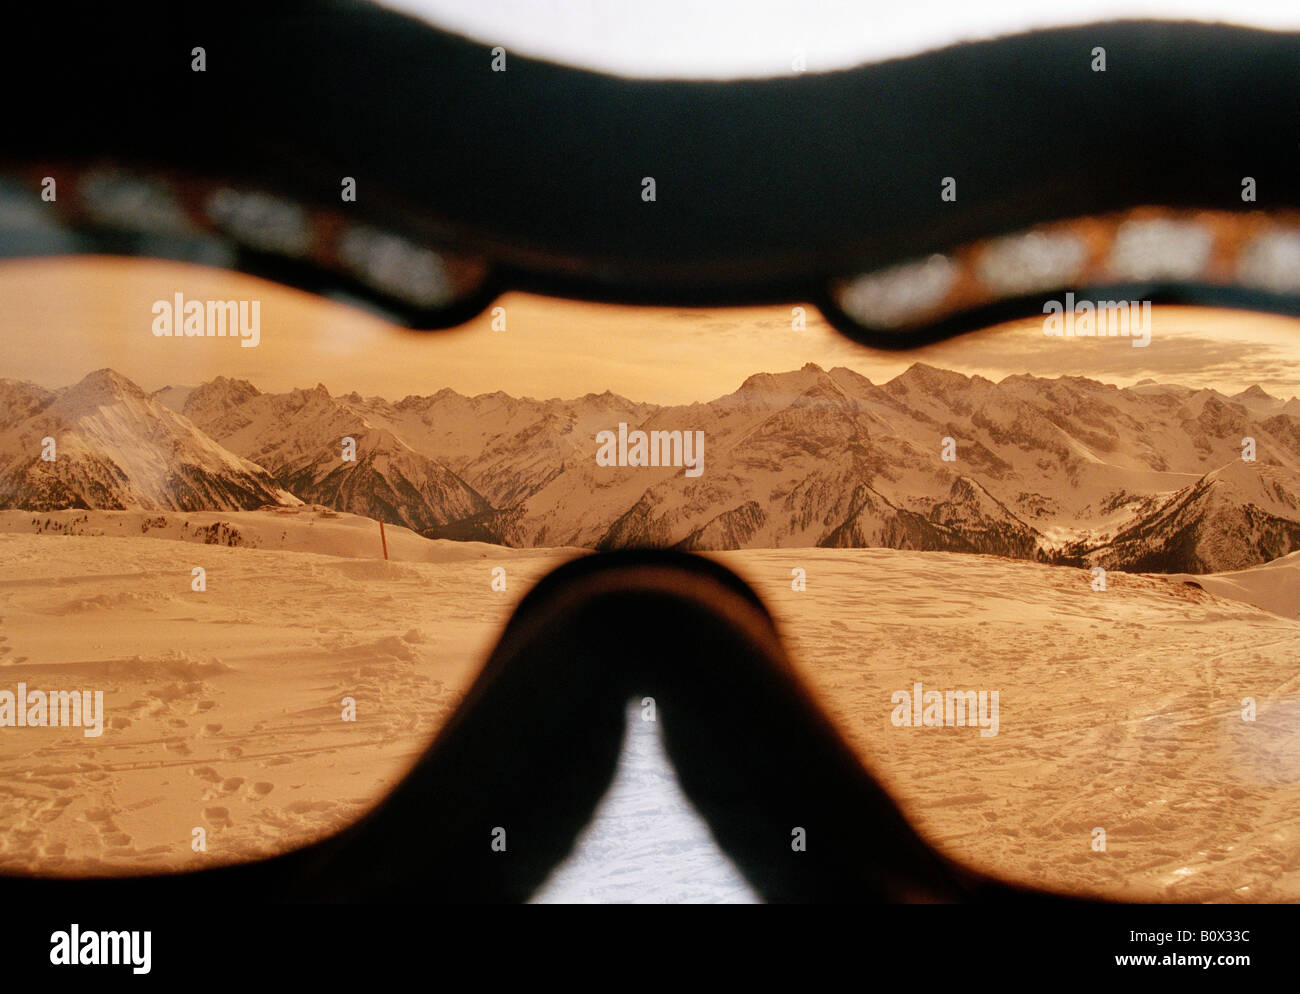 View of a mountain range through a skier's goggles - Stock Image